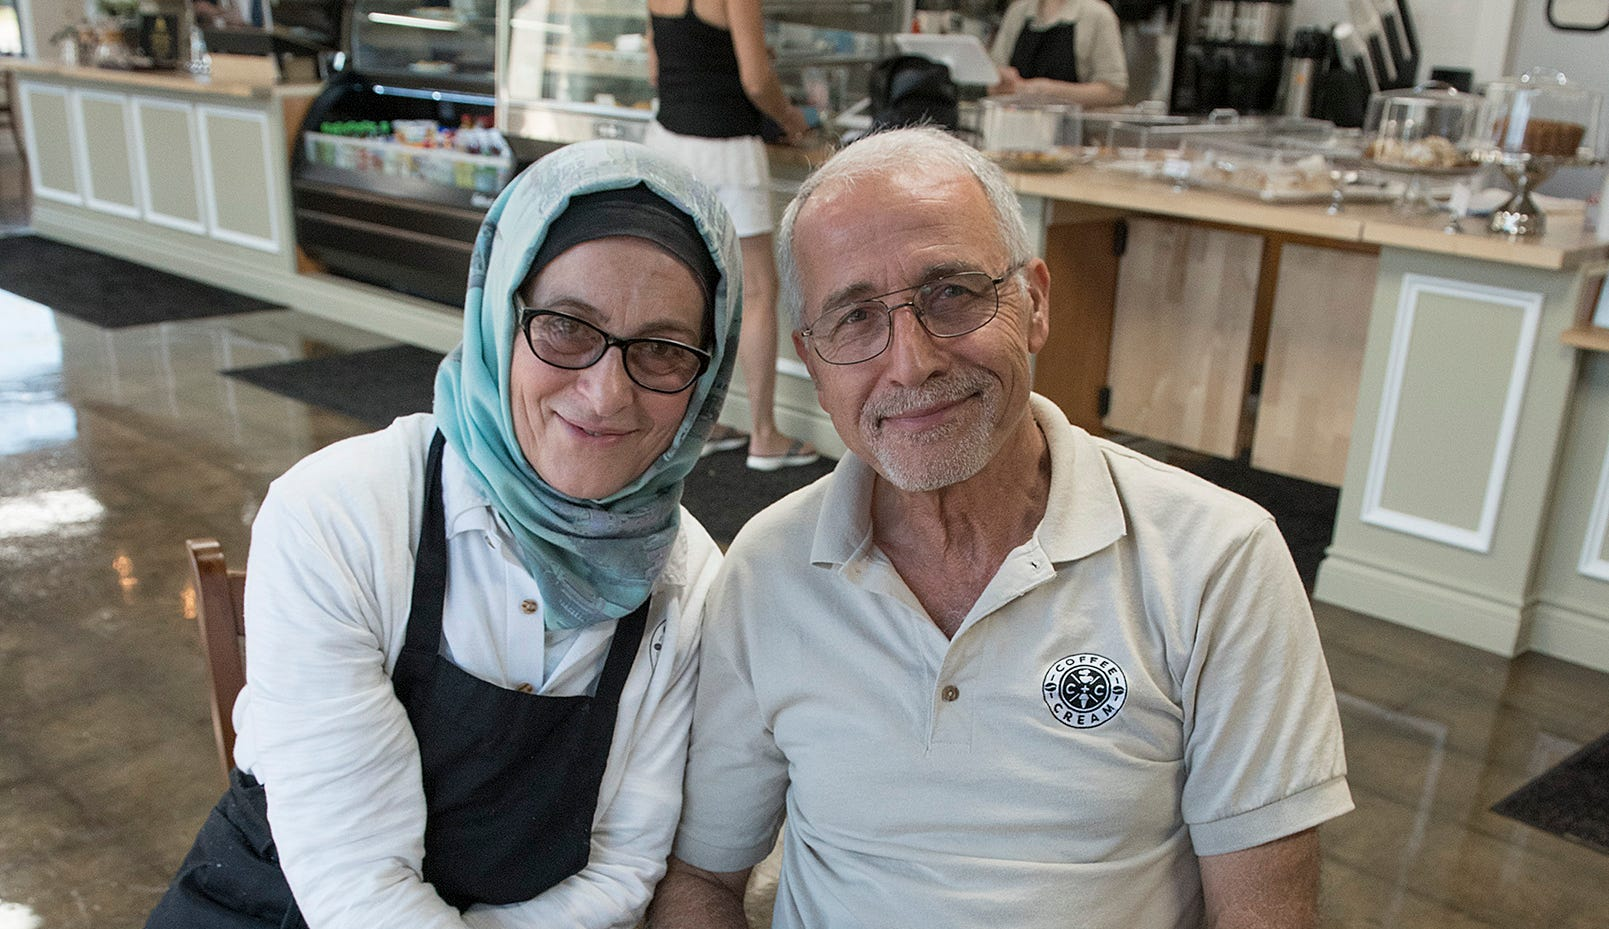 Couple's dream business is new coffee, ice cream shop in Livonia